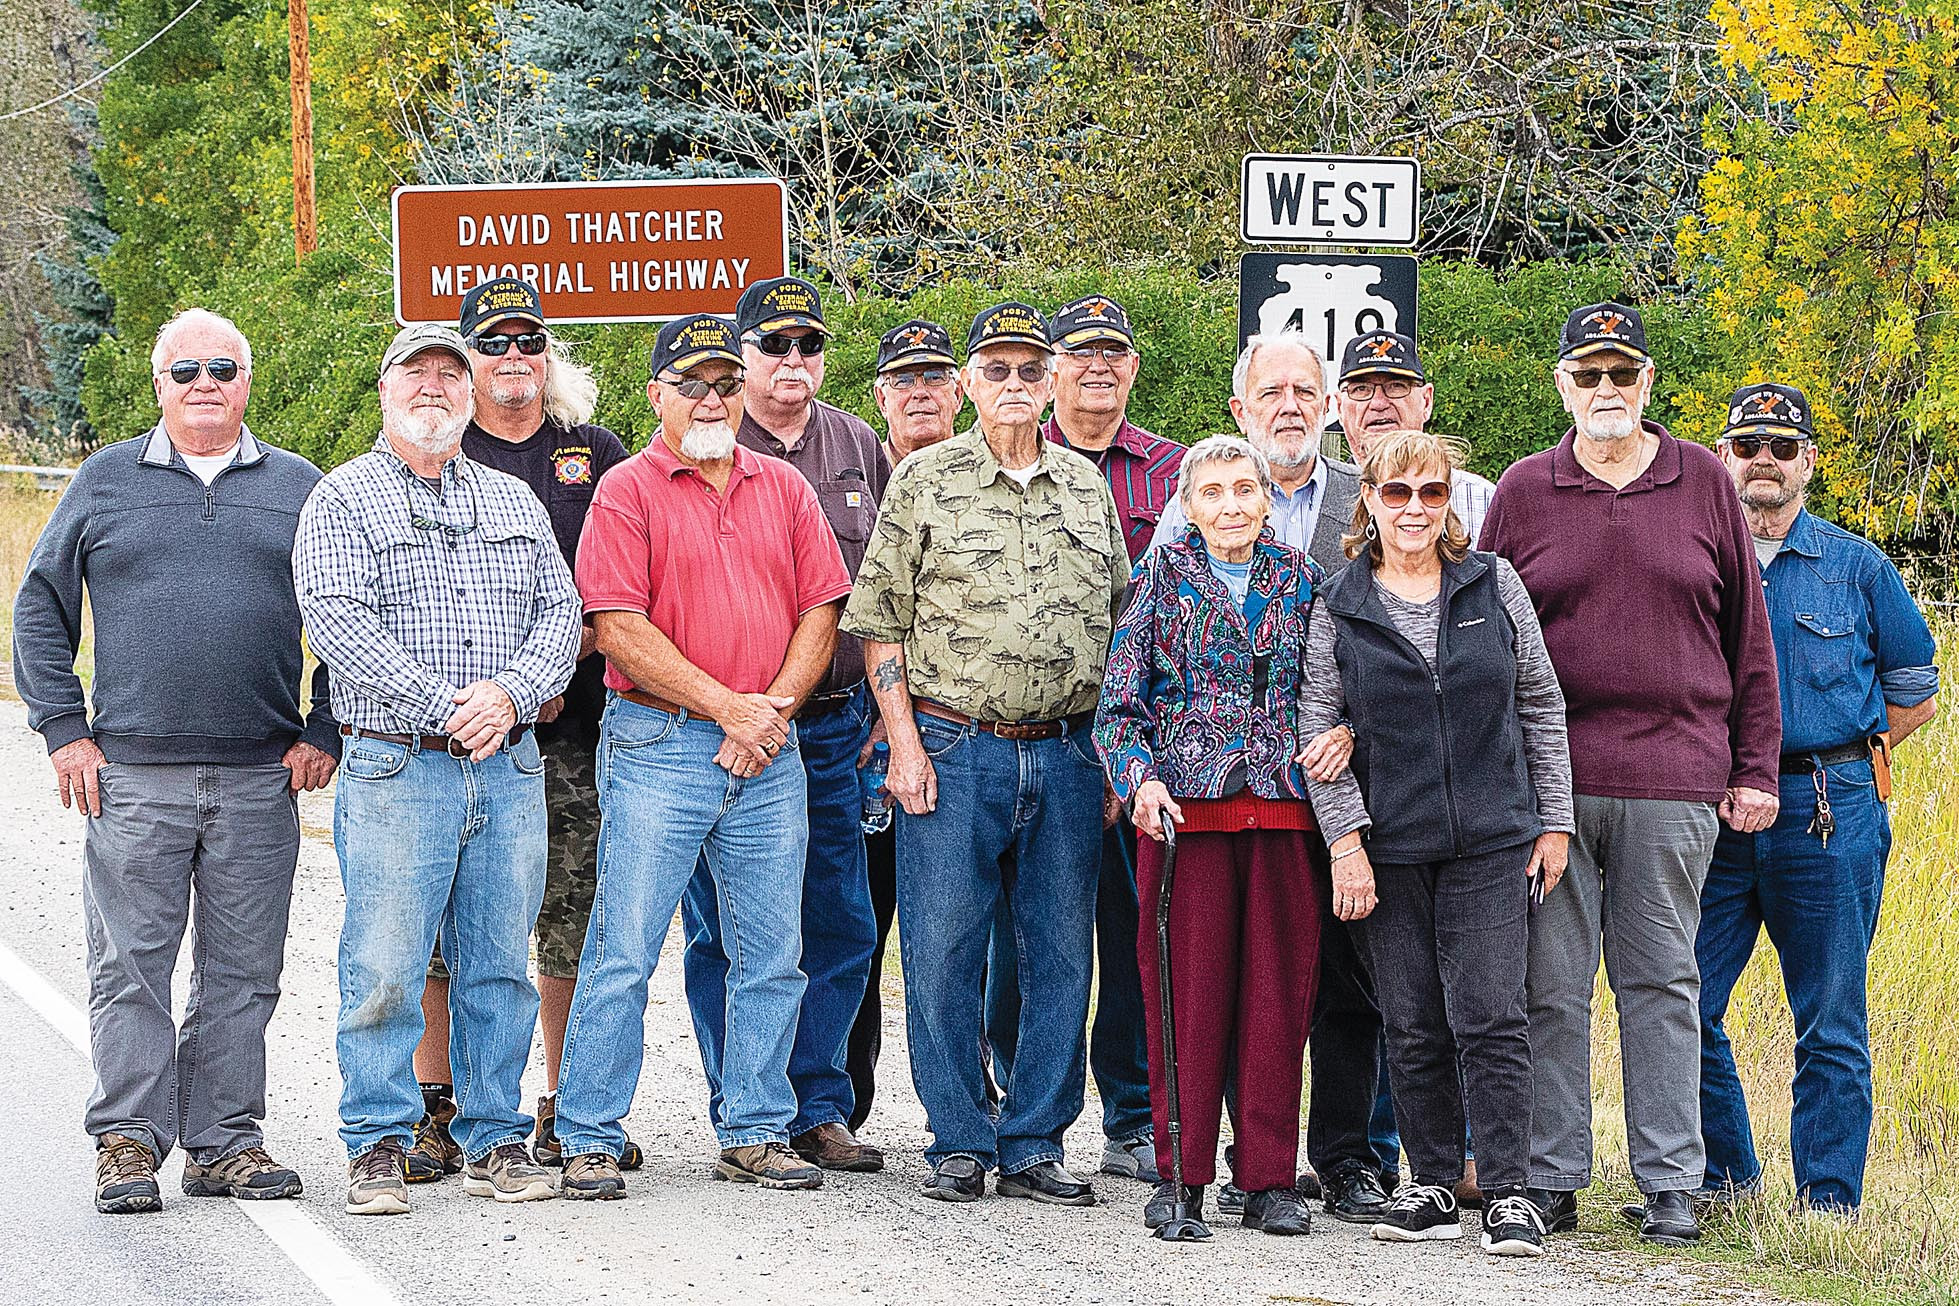 Photo by Maurice CravensVFW Post 7311 members pose in front of the new highway sign with members of David Thatcher's family.